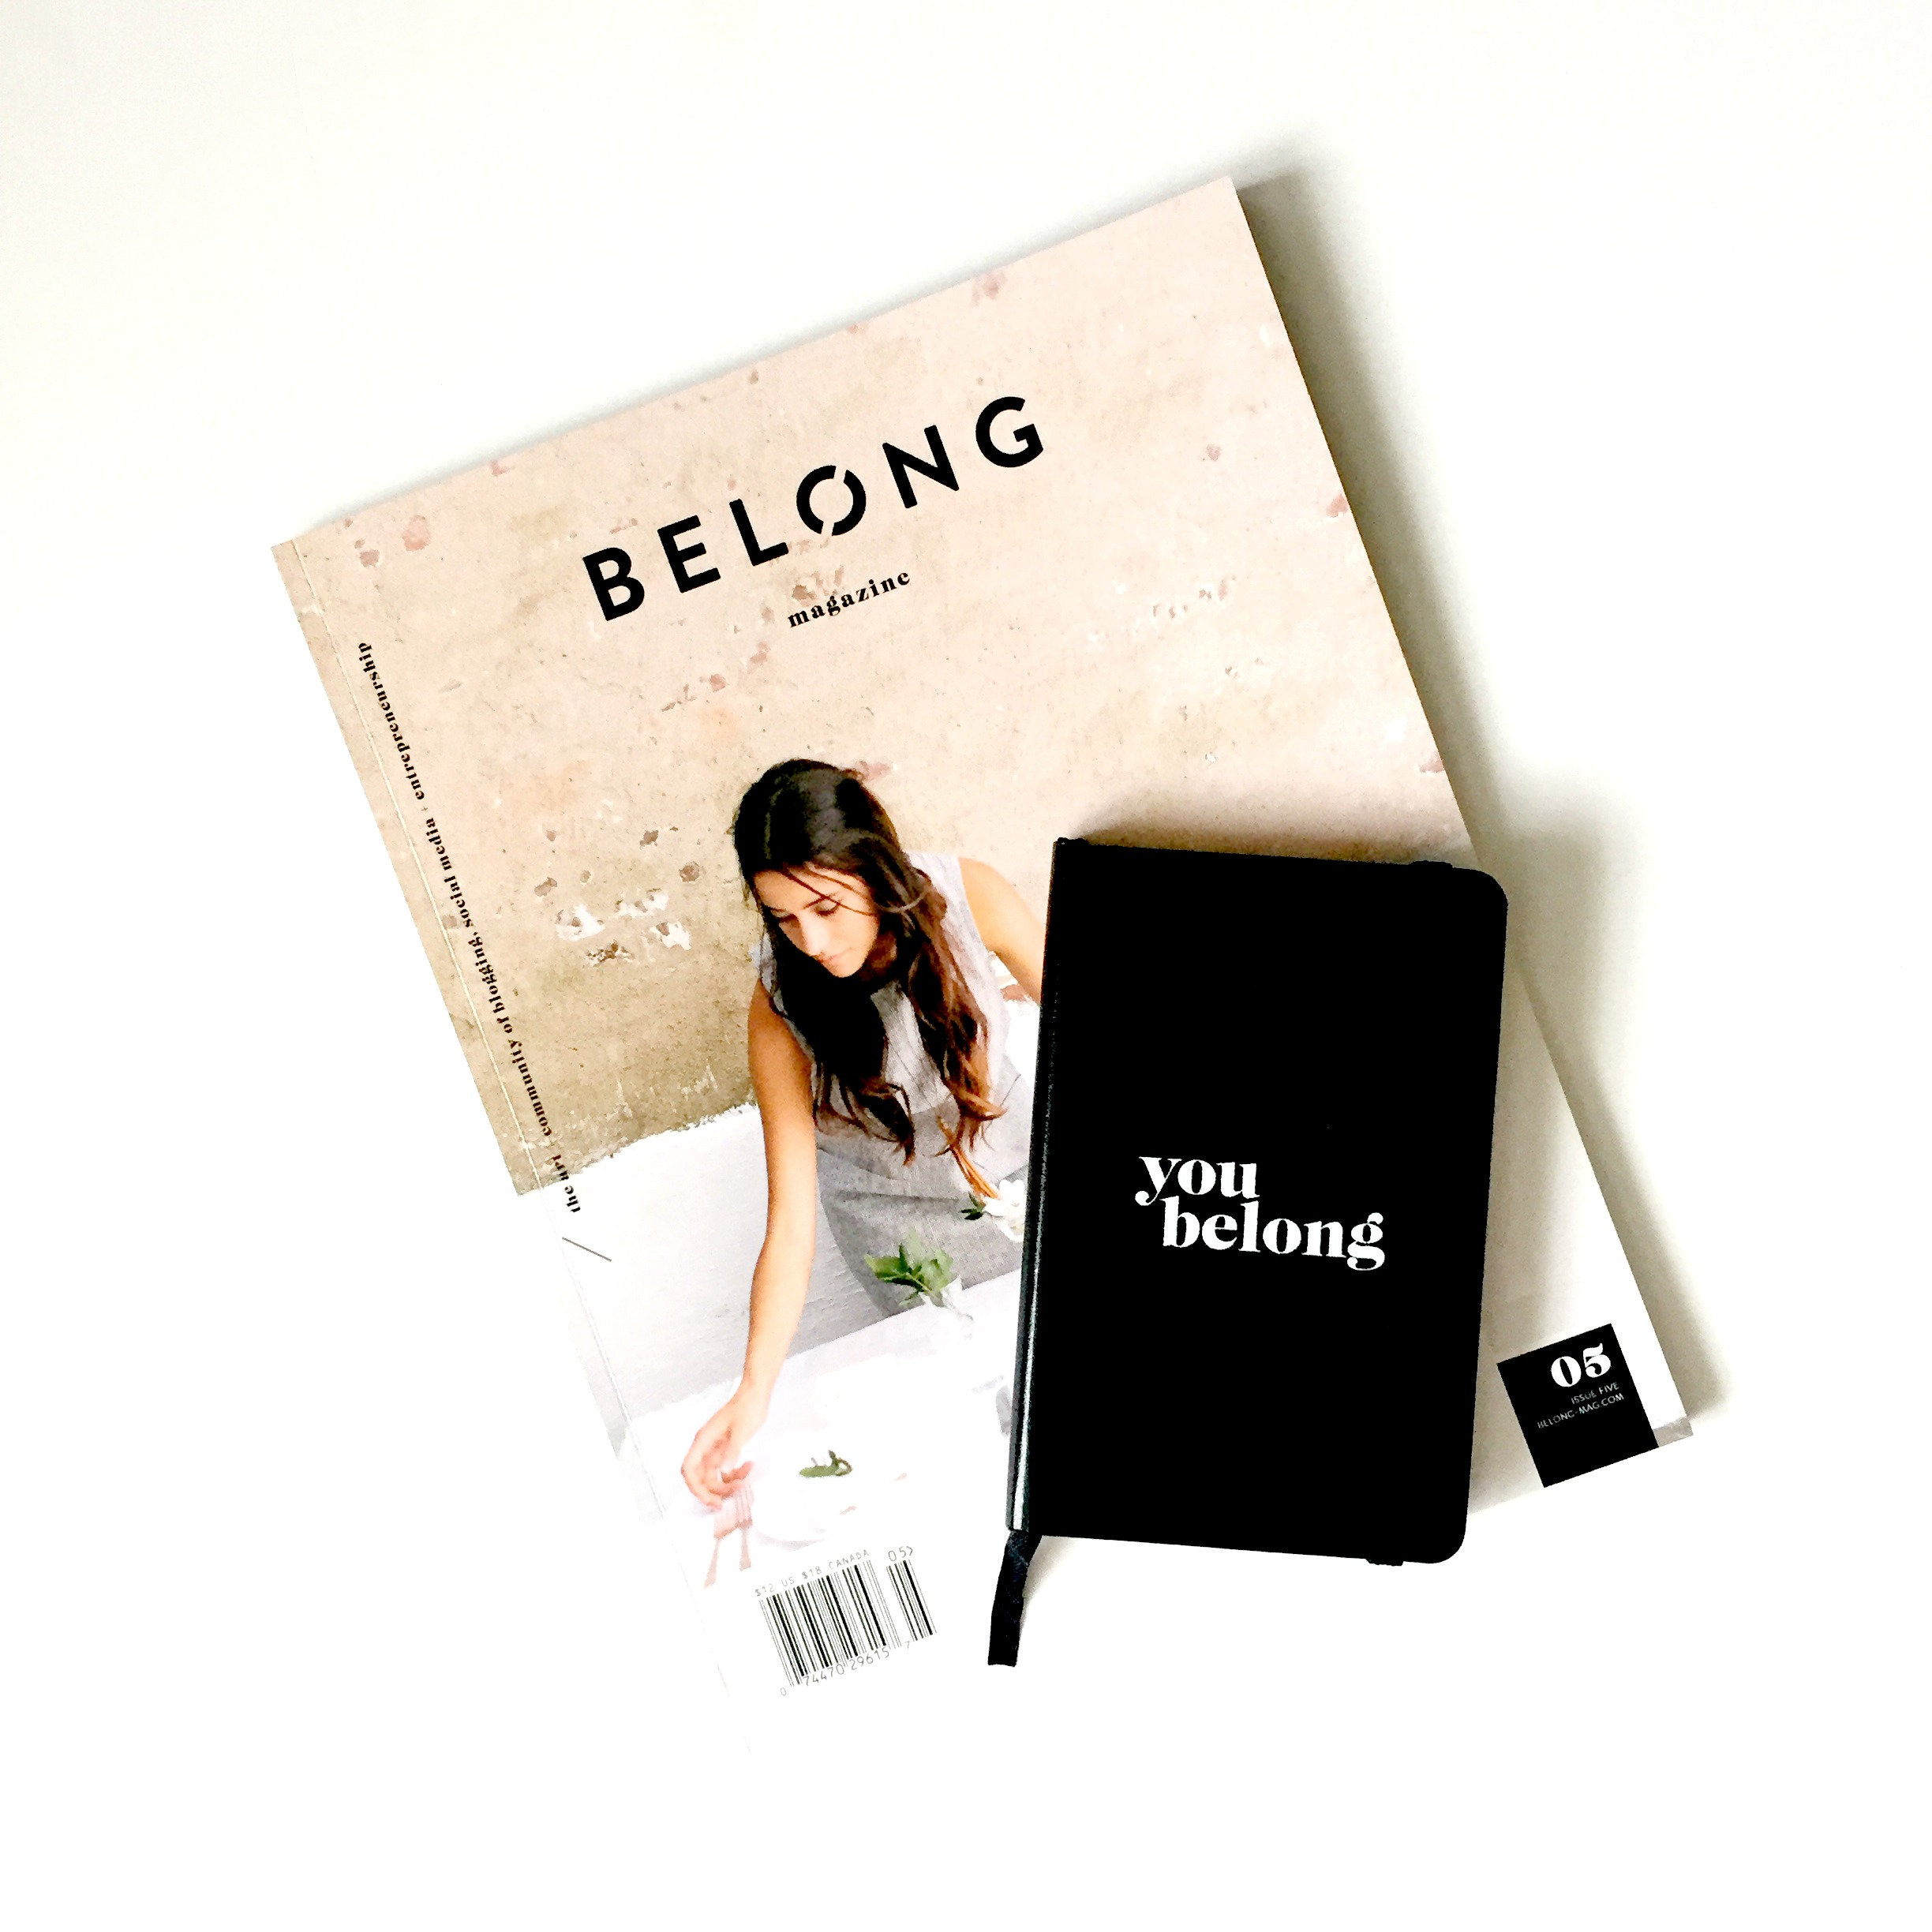 belong magazine / issue 05 / you belong notebook / belong magazine blog